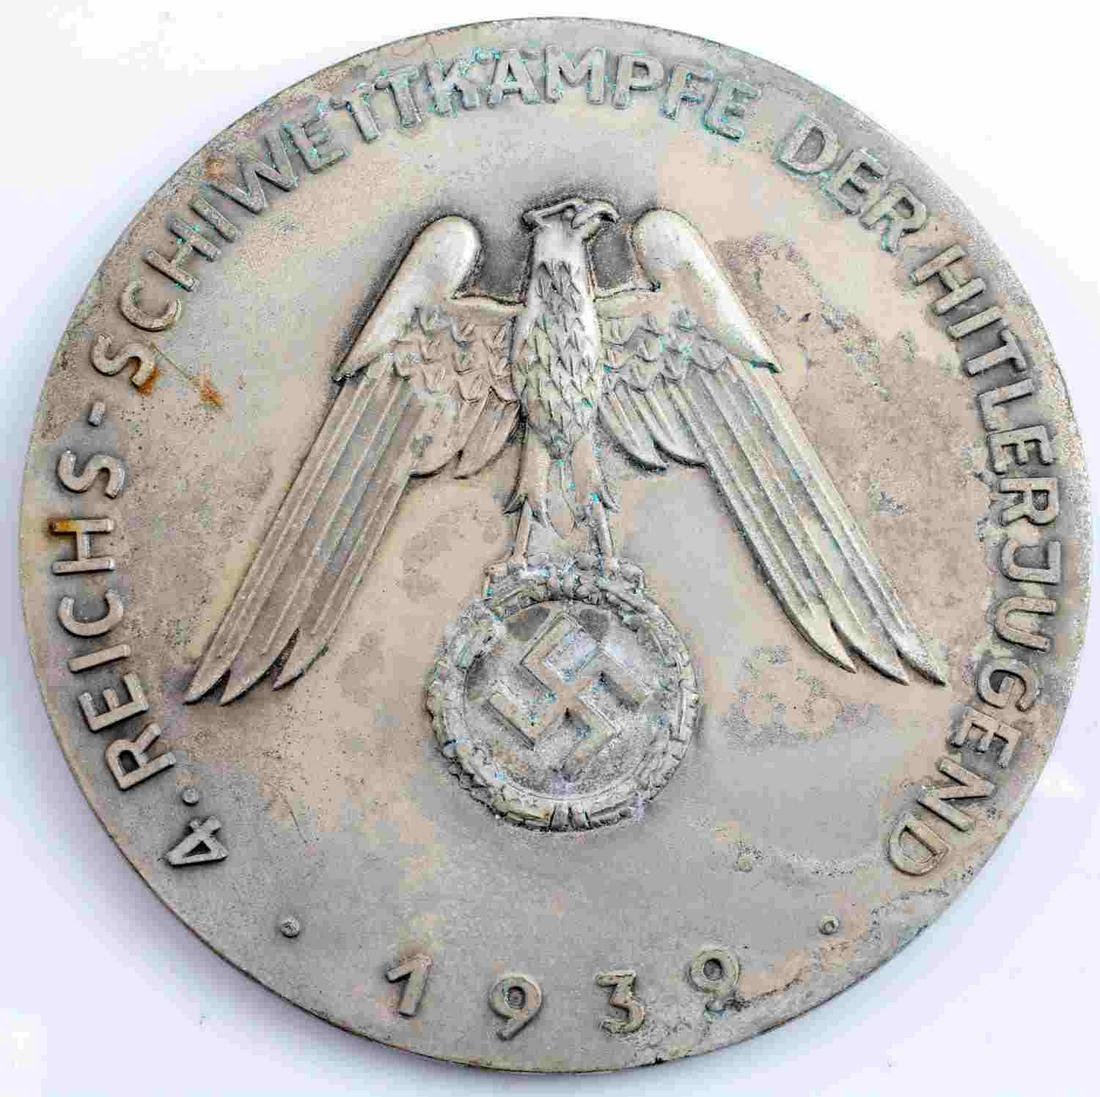 WWII GERMAN 1939 HITLER YOUTH EAGLE TABLE MEDAL